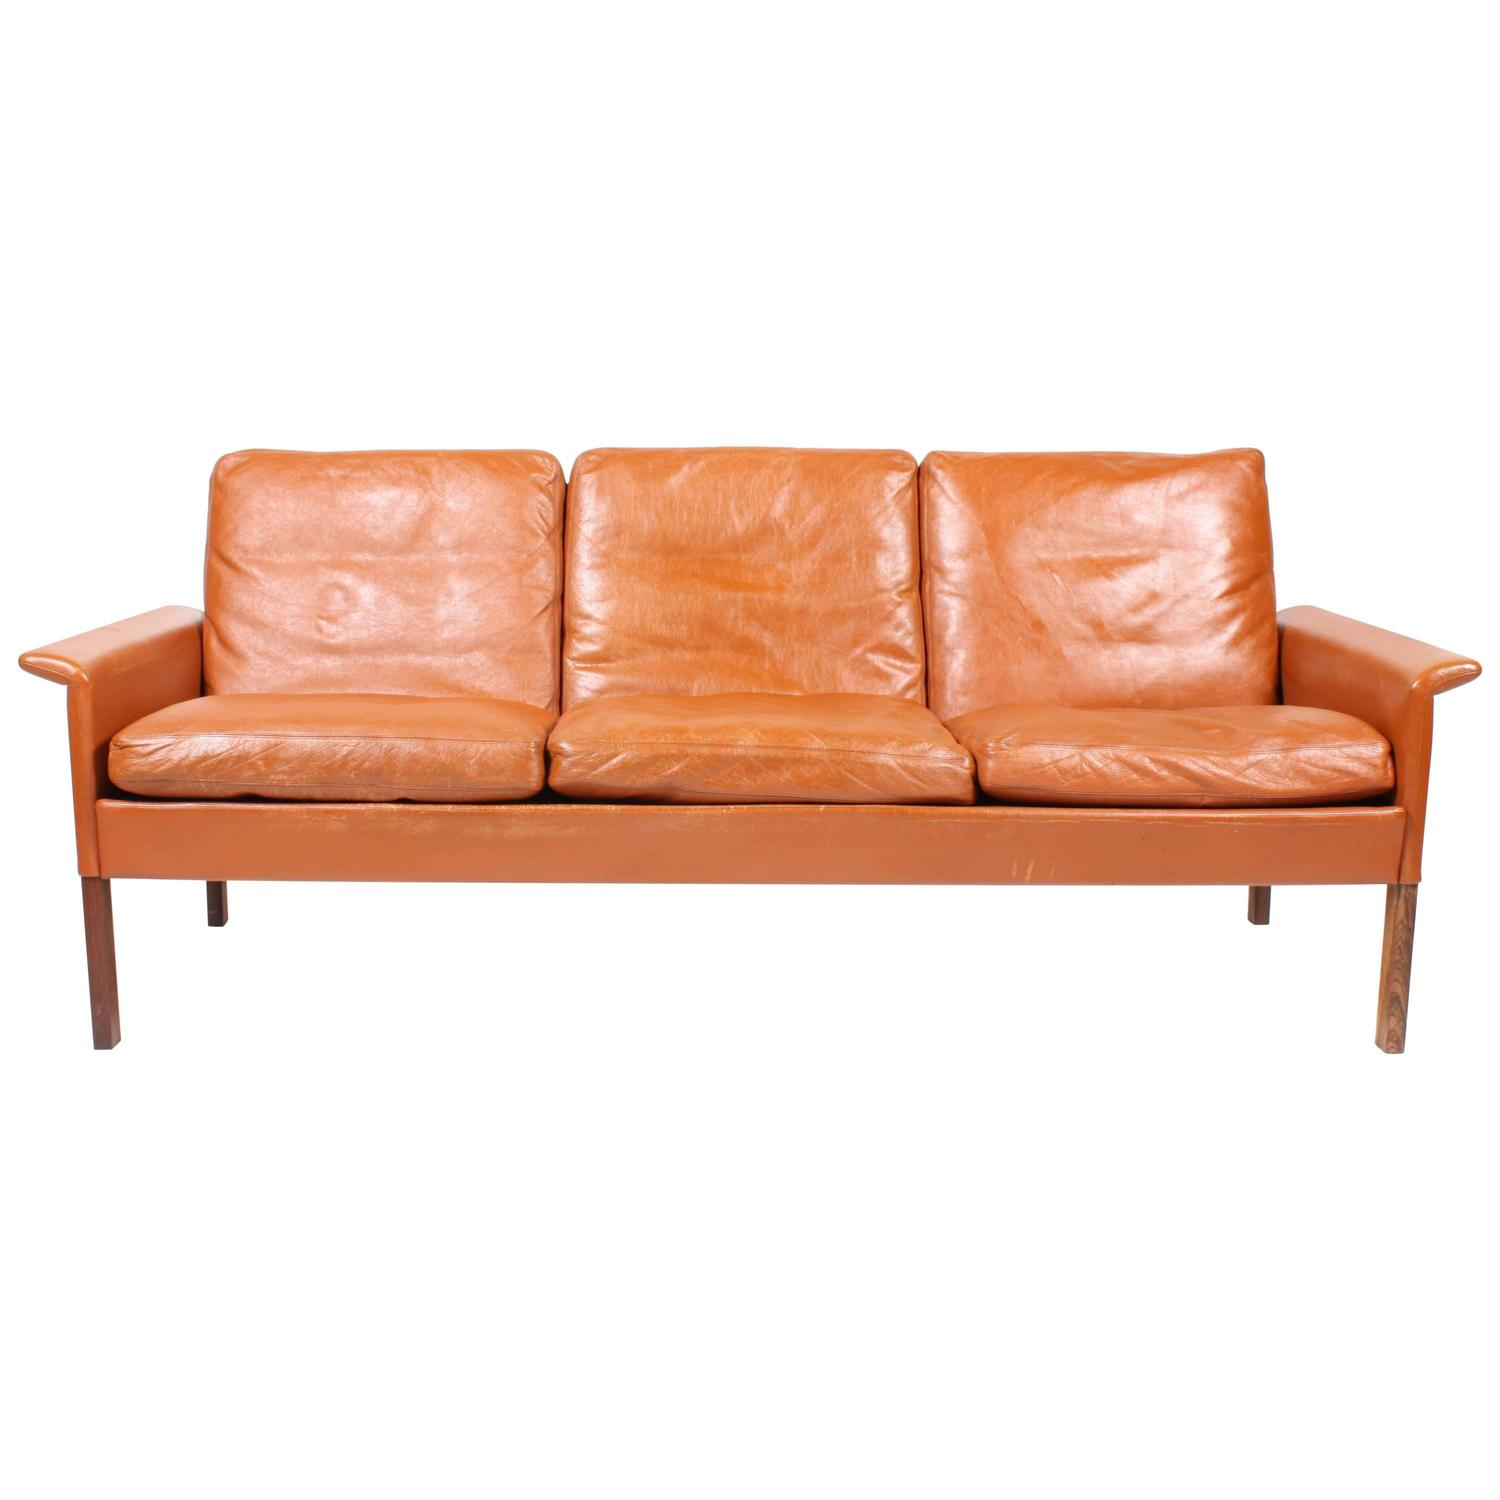 Hans Olsen Danish Modern Modular Teak Sofa Bed at 1stdibs